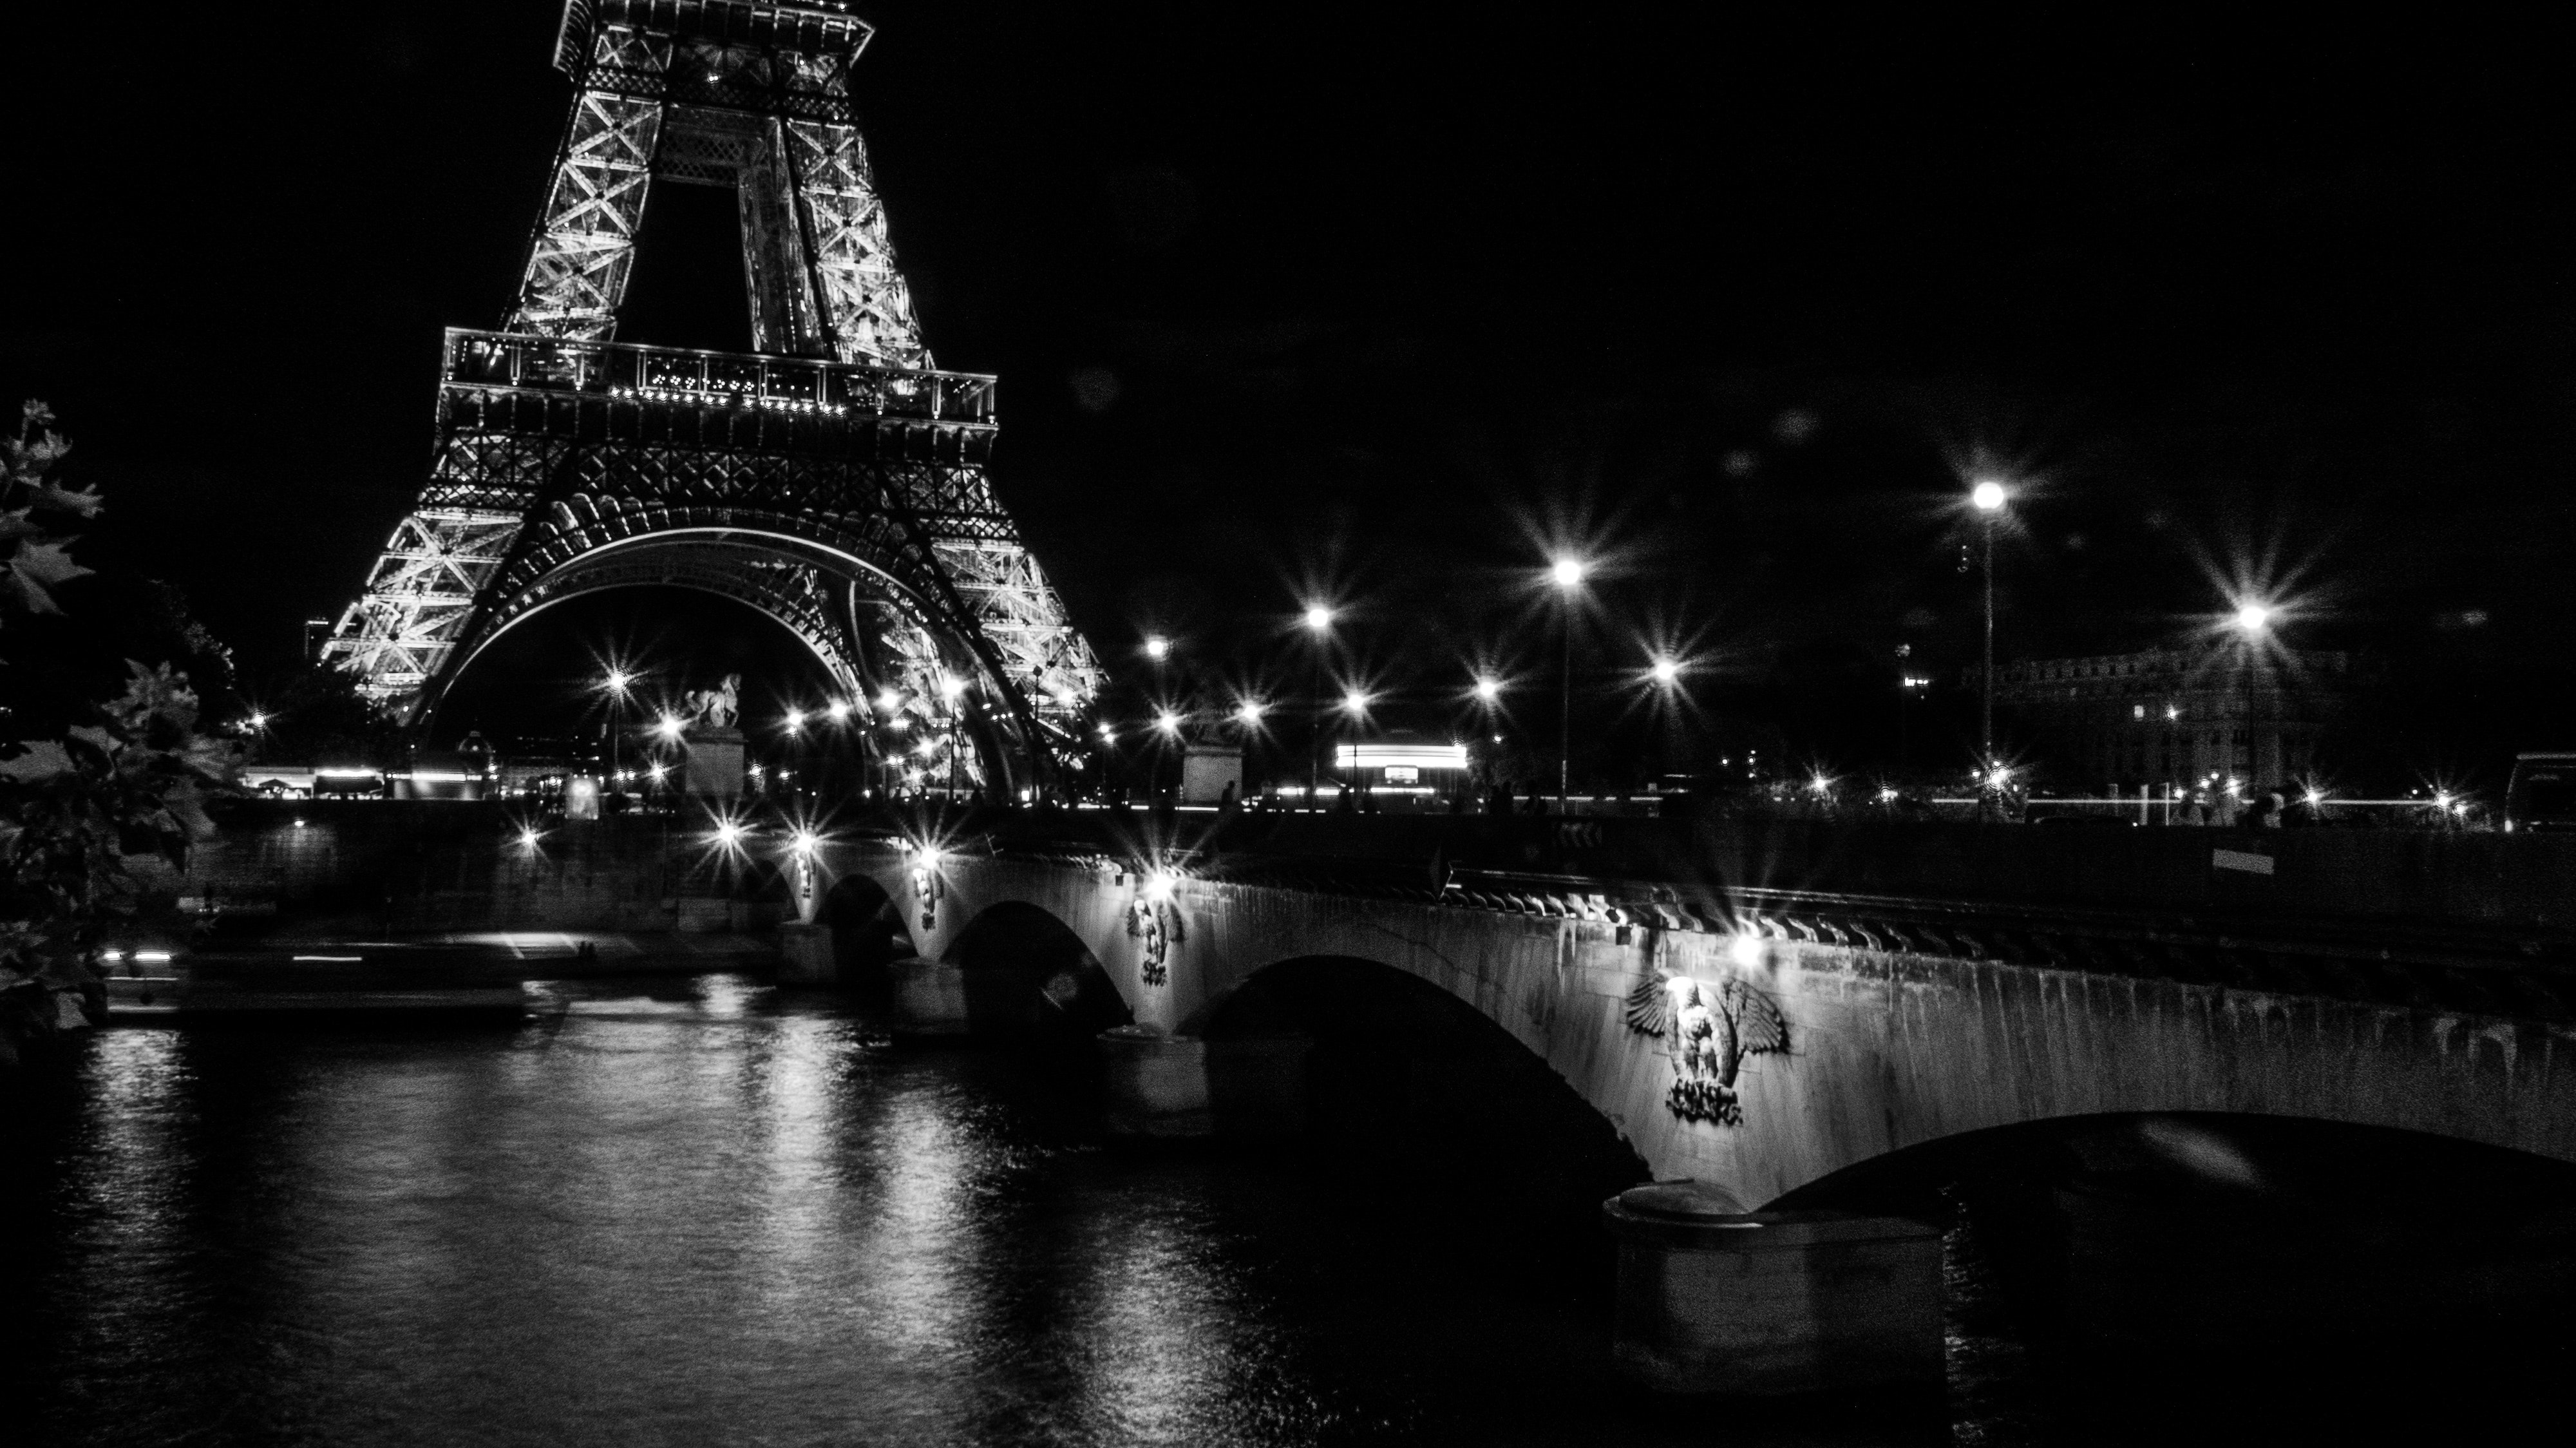 Eiffel Tower Images Black And White: Free Stock Photo Of Black And White, Bridge, Eiffel Tower